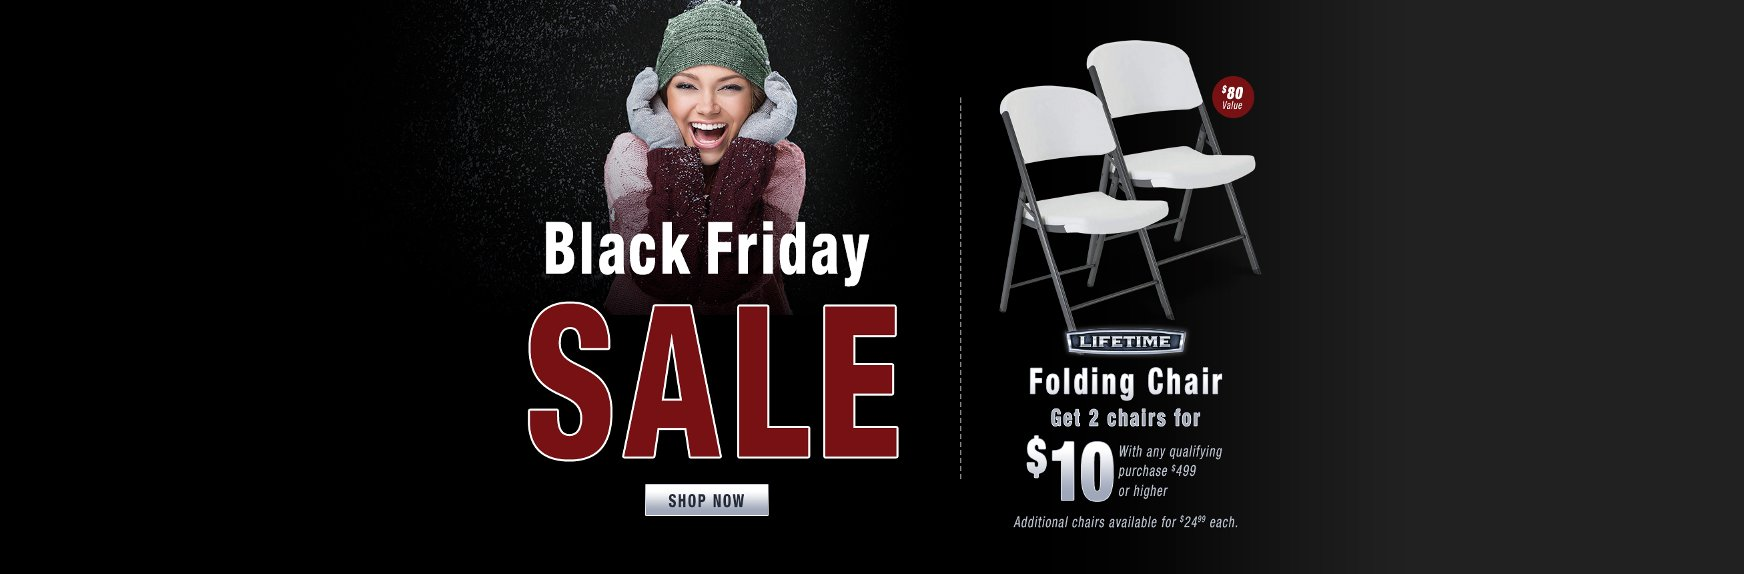 Black Friday Sale with Bonus Folding Chairs for $10 with $499 Purchase